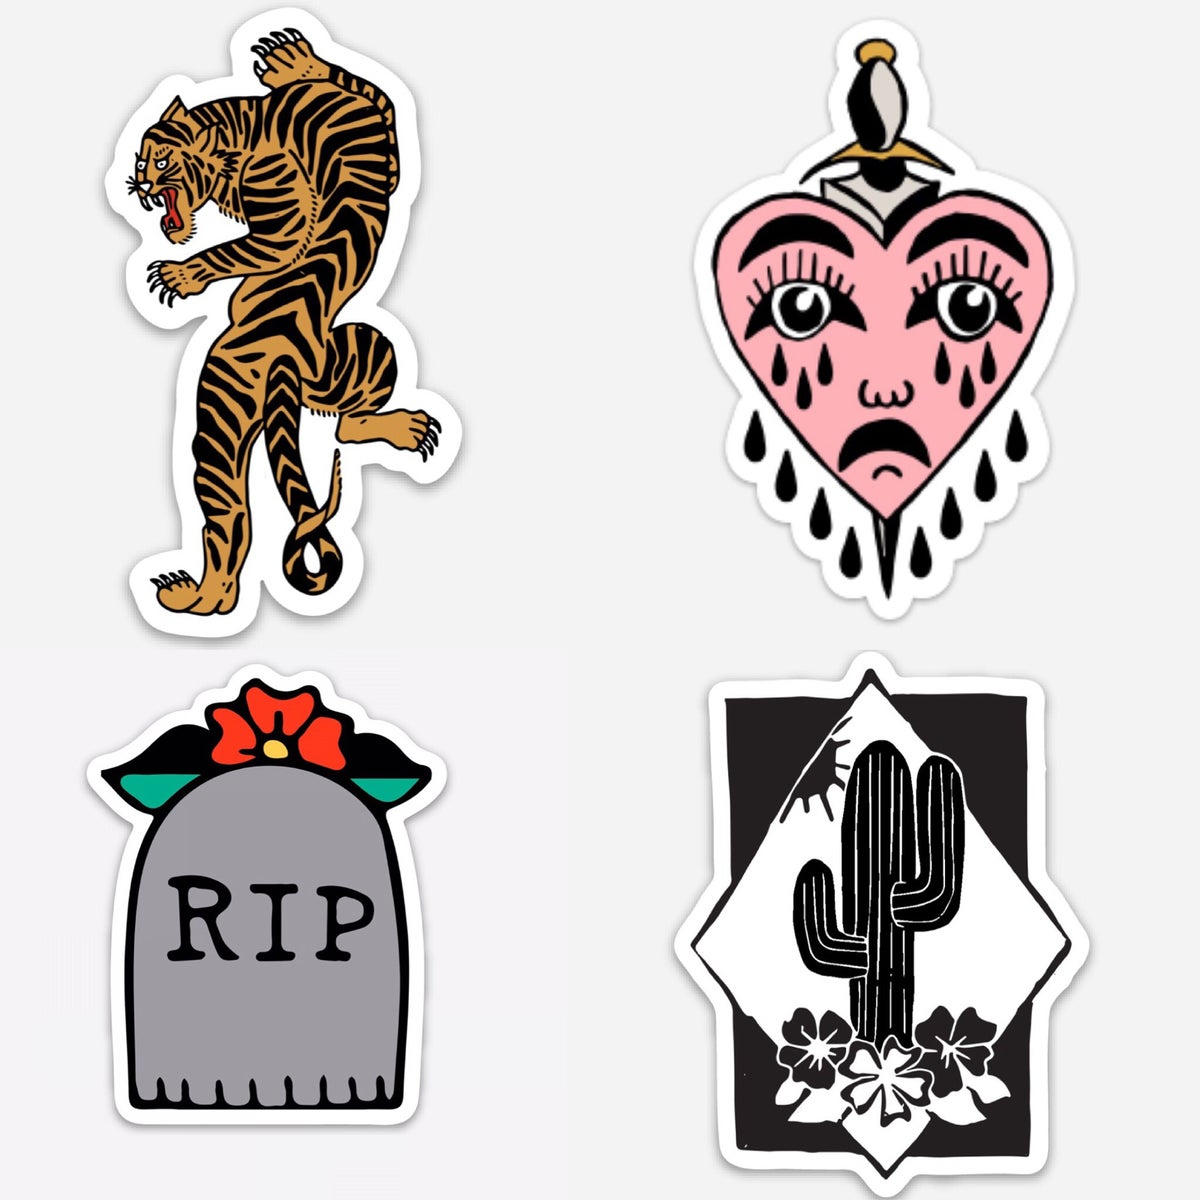 Image of Stickers (options available)